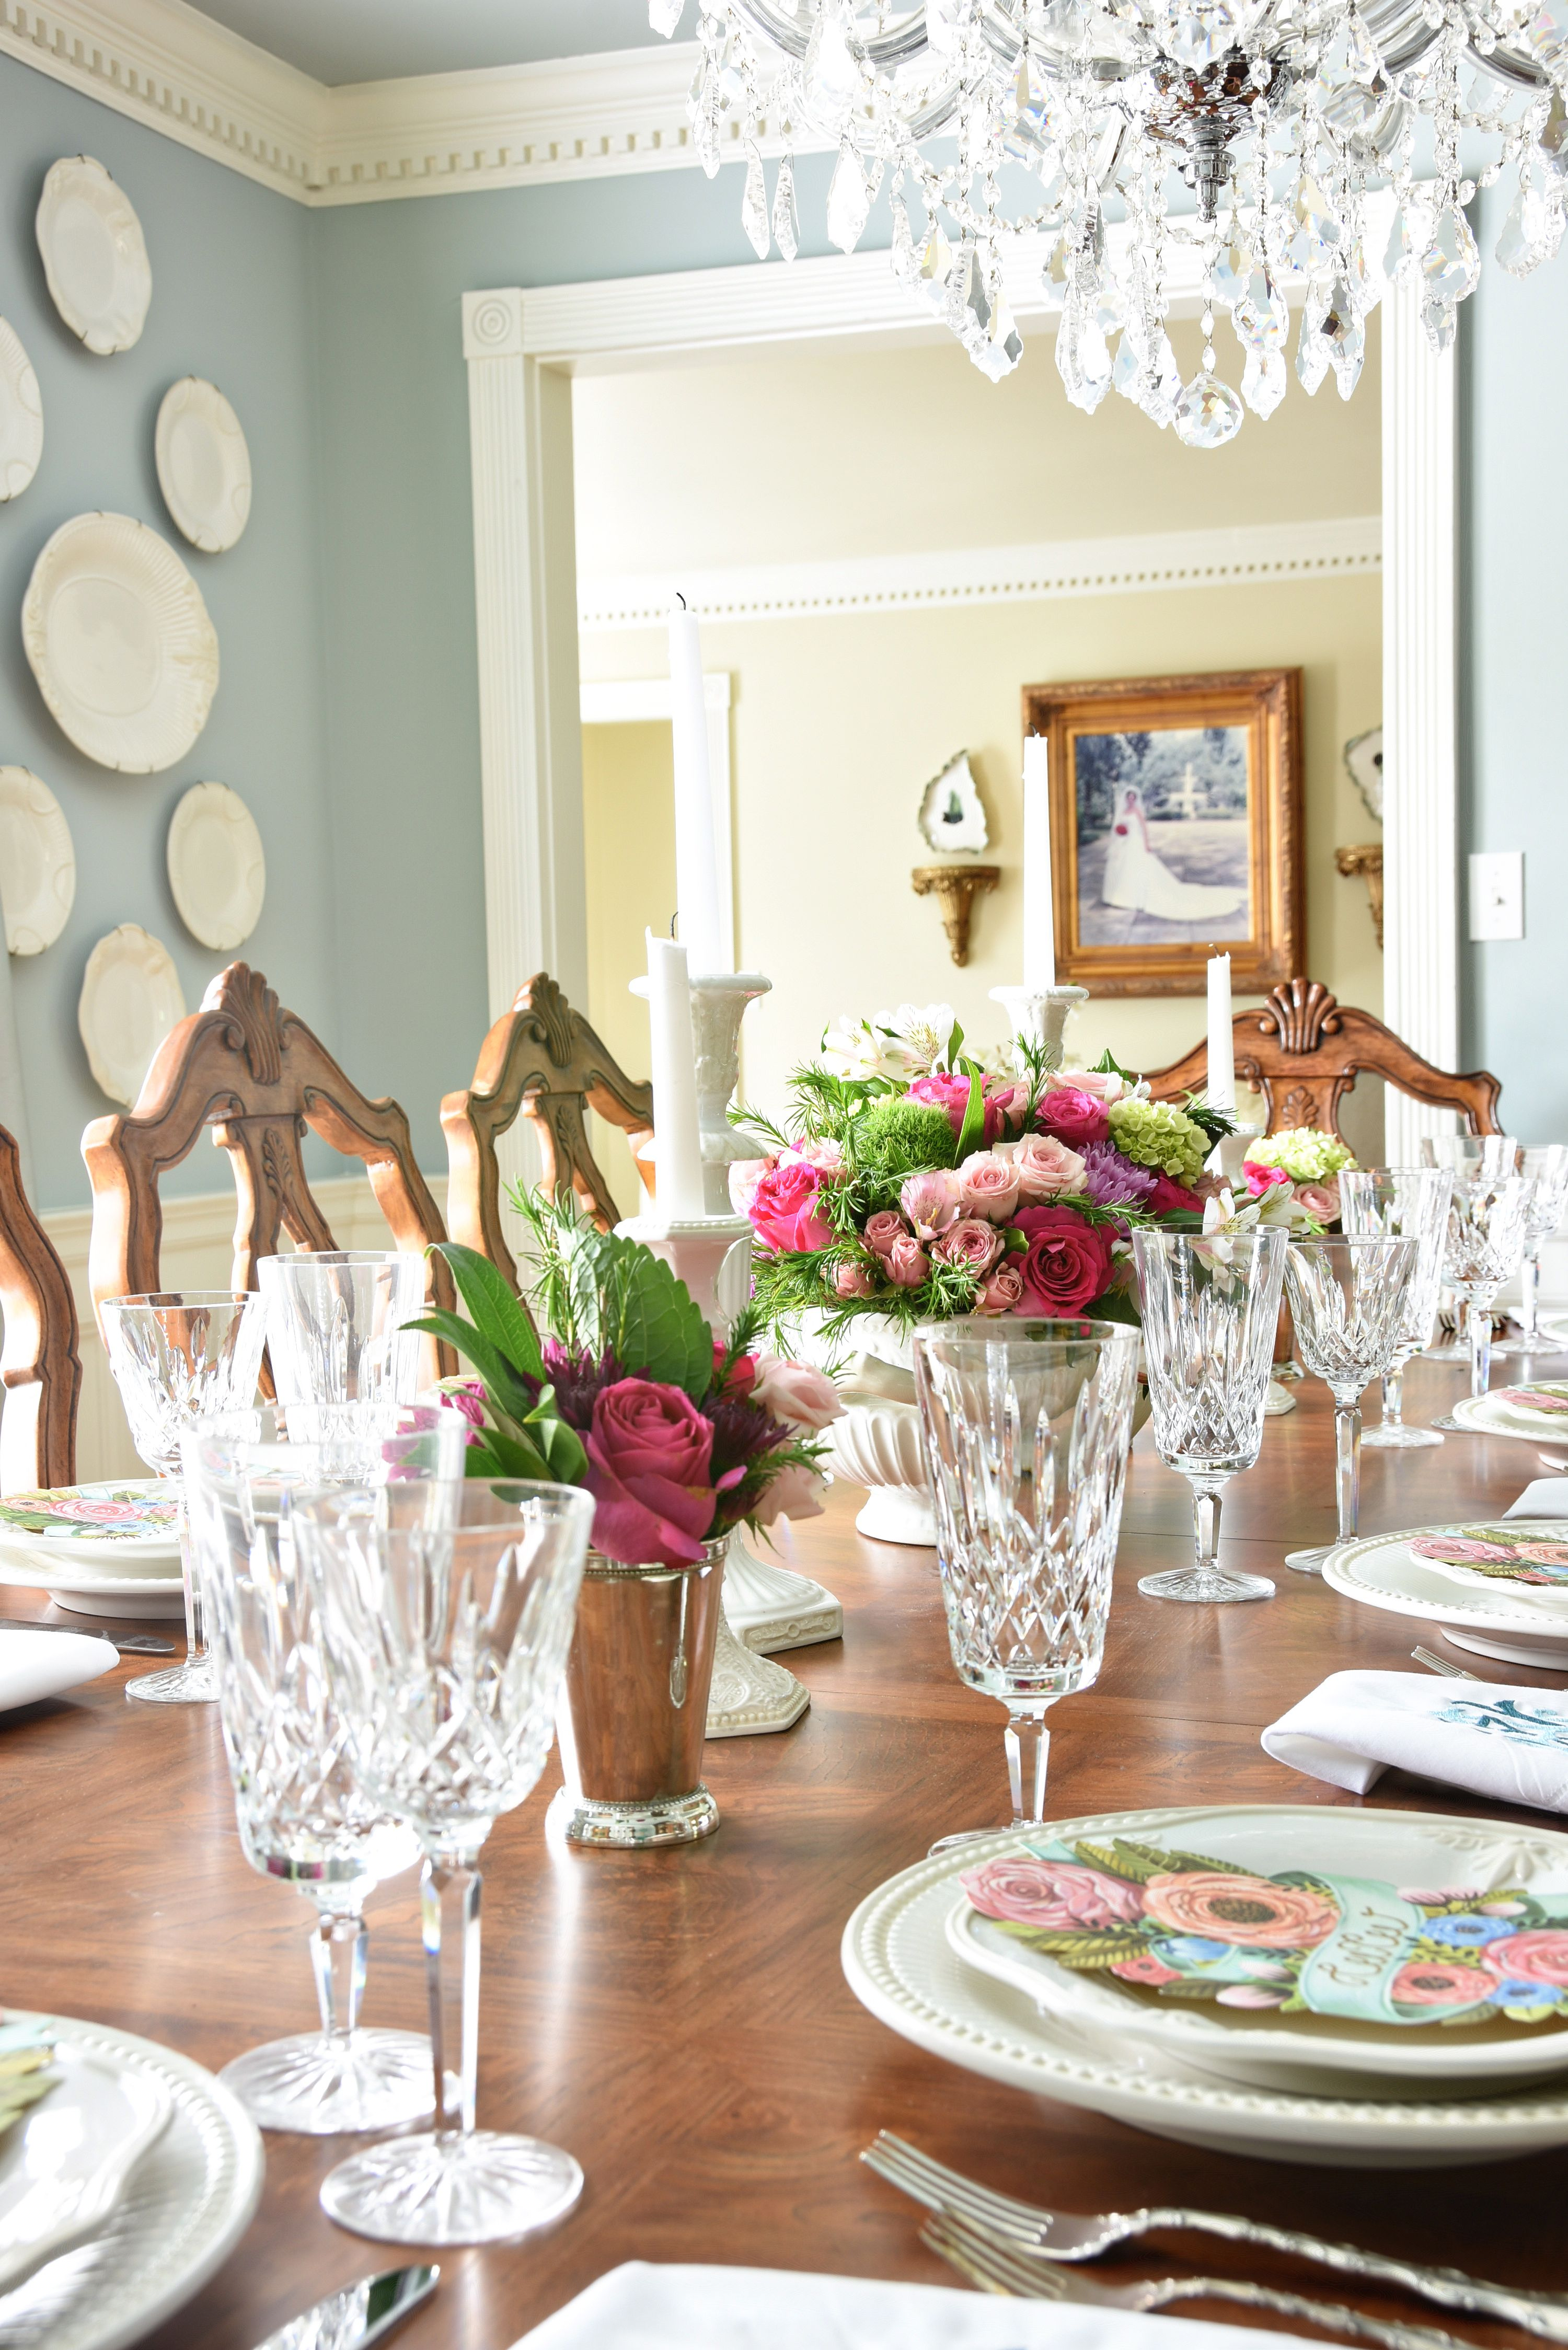 Formal Dining Table For Easter Spring Events Formal Dining Tables Dining Room Table Centerpieces Dining Room Colors